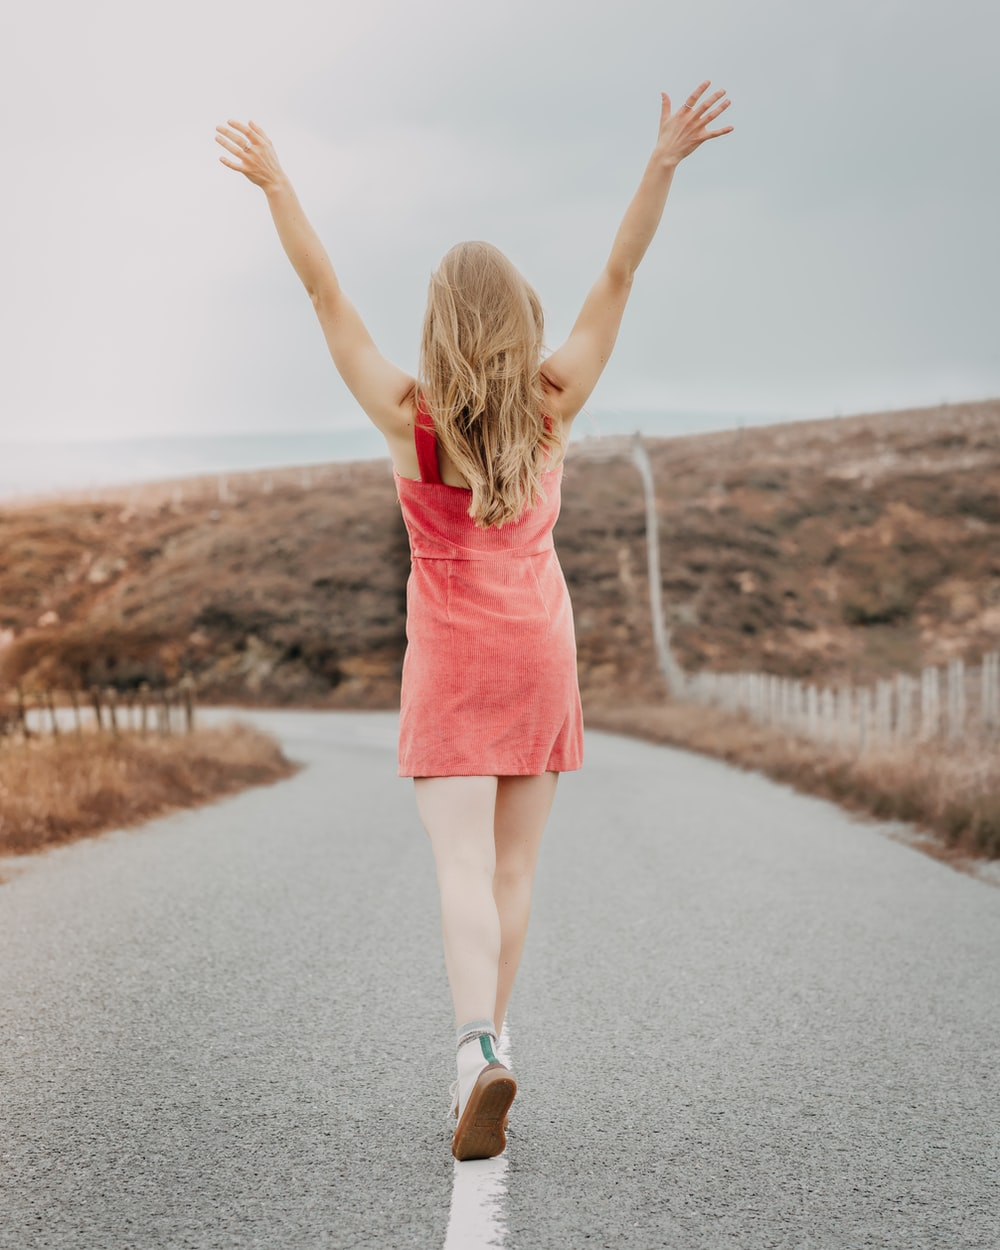 girl in pink dress standing on road during daytime